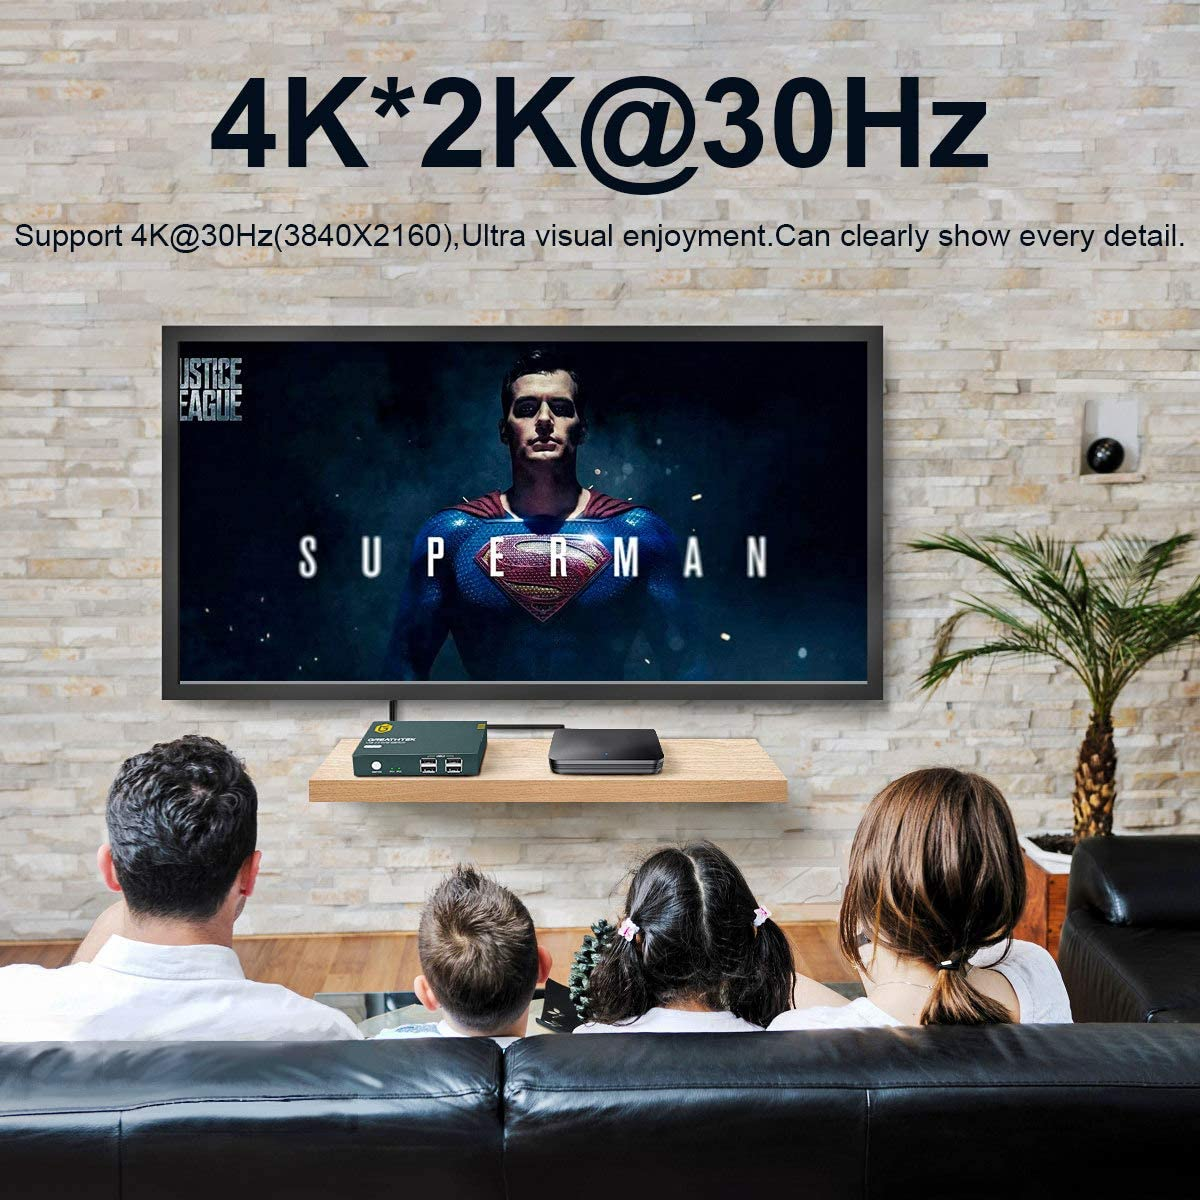 GREATHTEK HDMI KVM Switch USB 2 Port 4K 4K @30Hz KVM Switch 2 PC 1 Monitor Support Wireless Keyboard and Mouse with 2 USB and 2 HDMI Cables USB2.0 Ultra HD